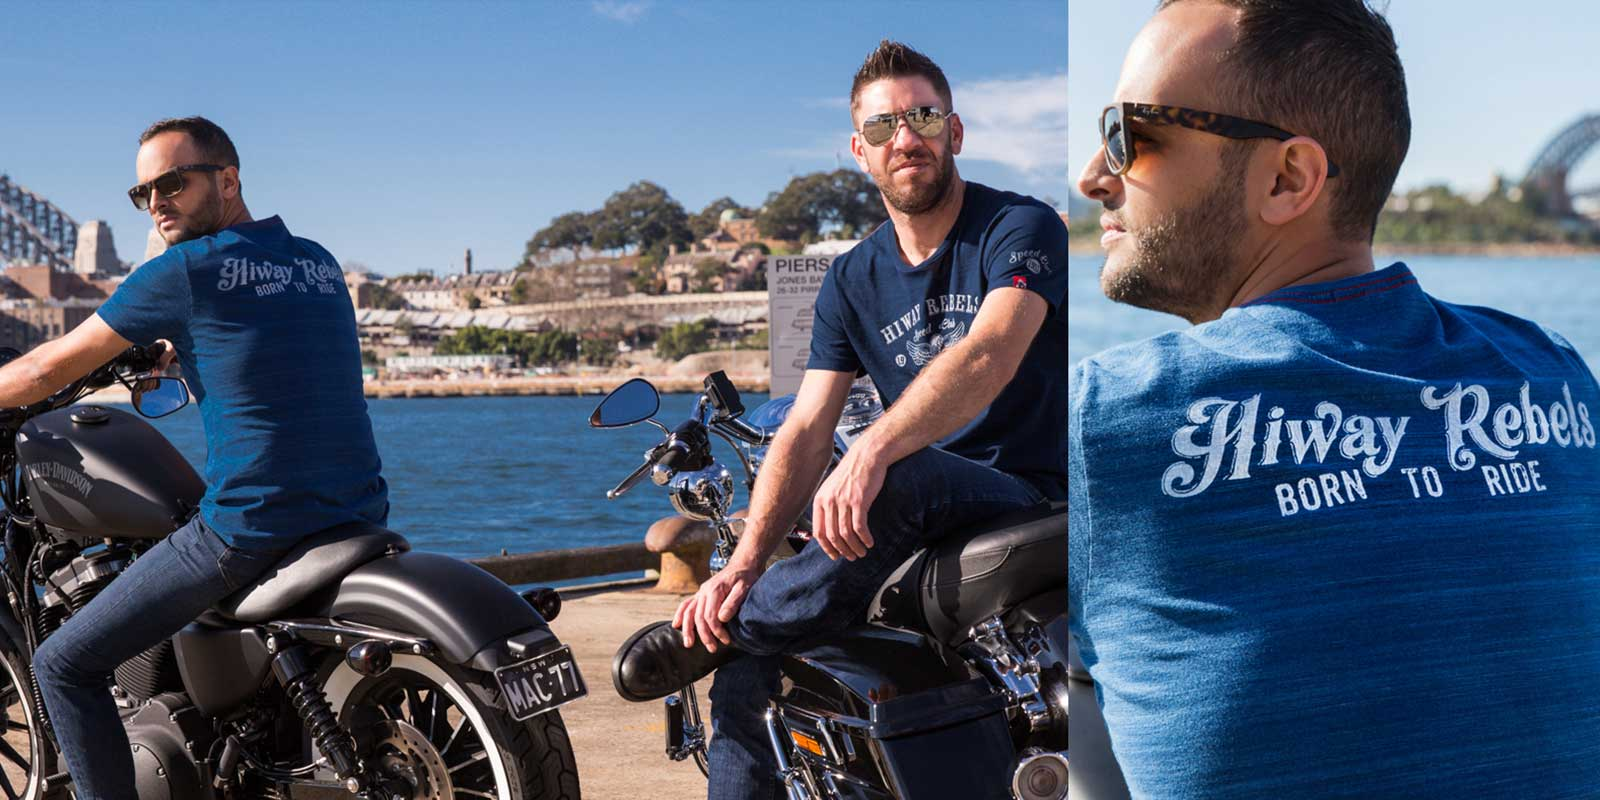 Two men on Harley Davidson bikes wearing Hiway Rebel indigo t-shirts with water views in background.